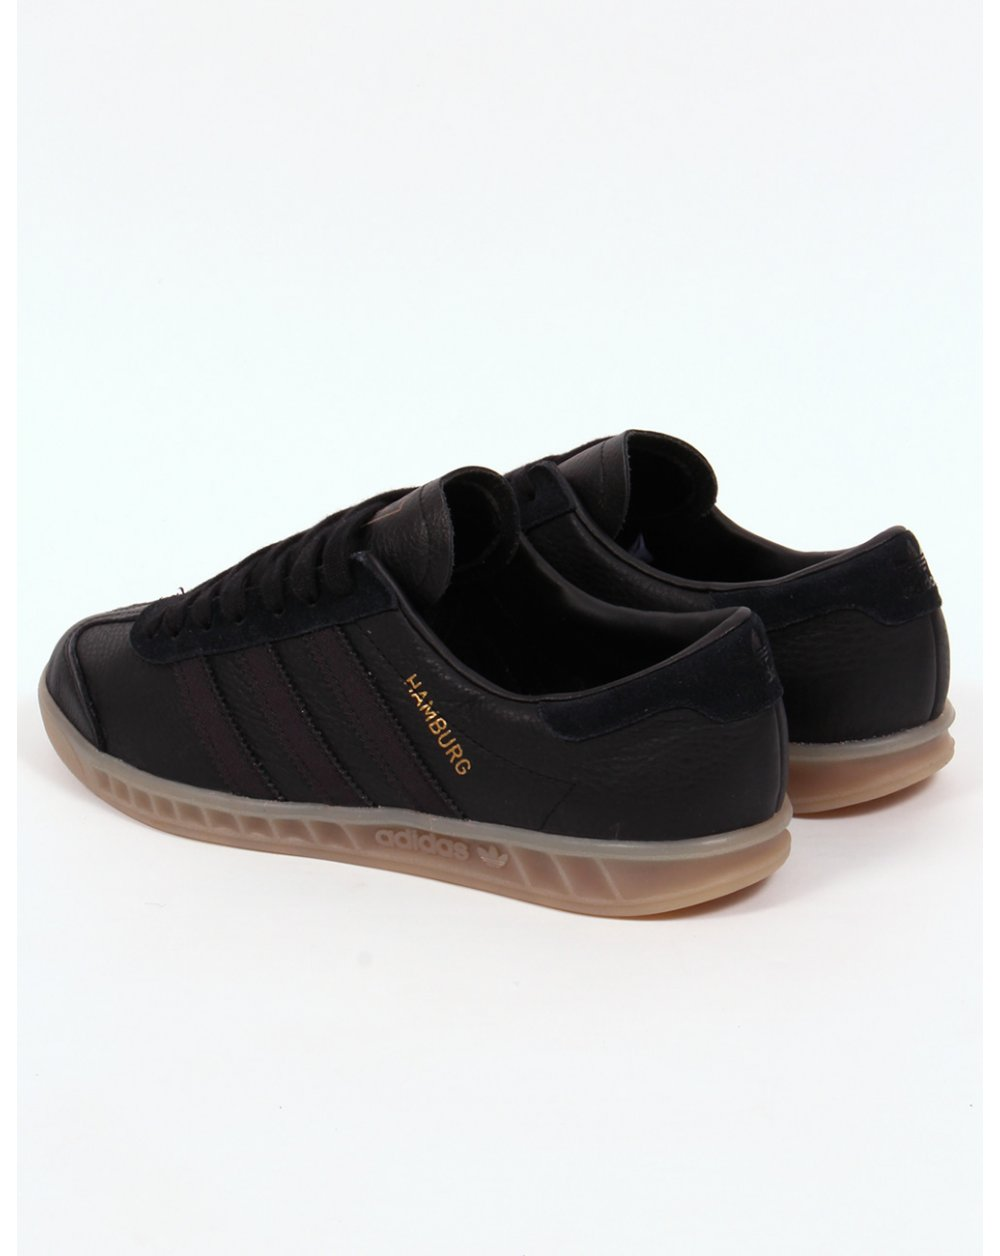 Adidas Hamburg Leather Trainers Black/gum